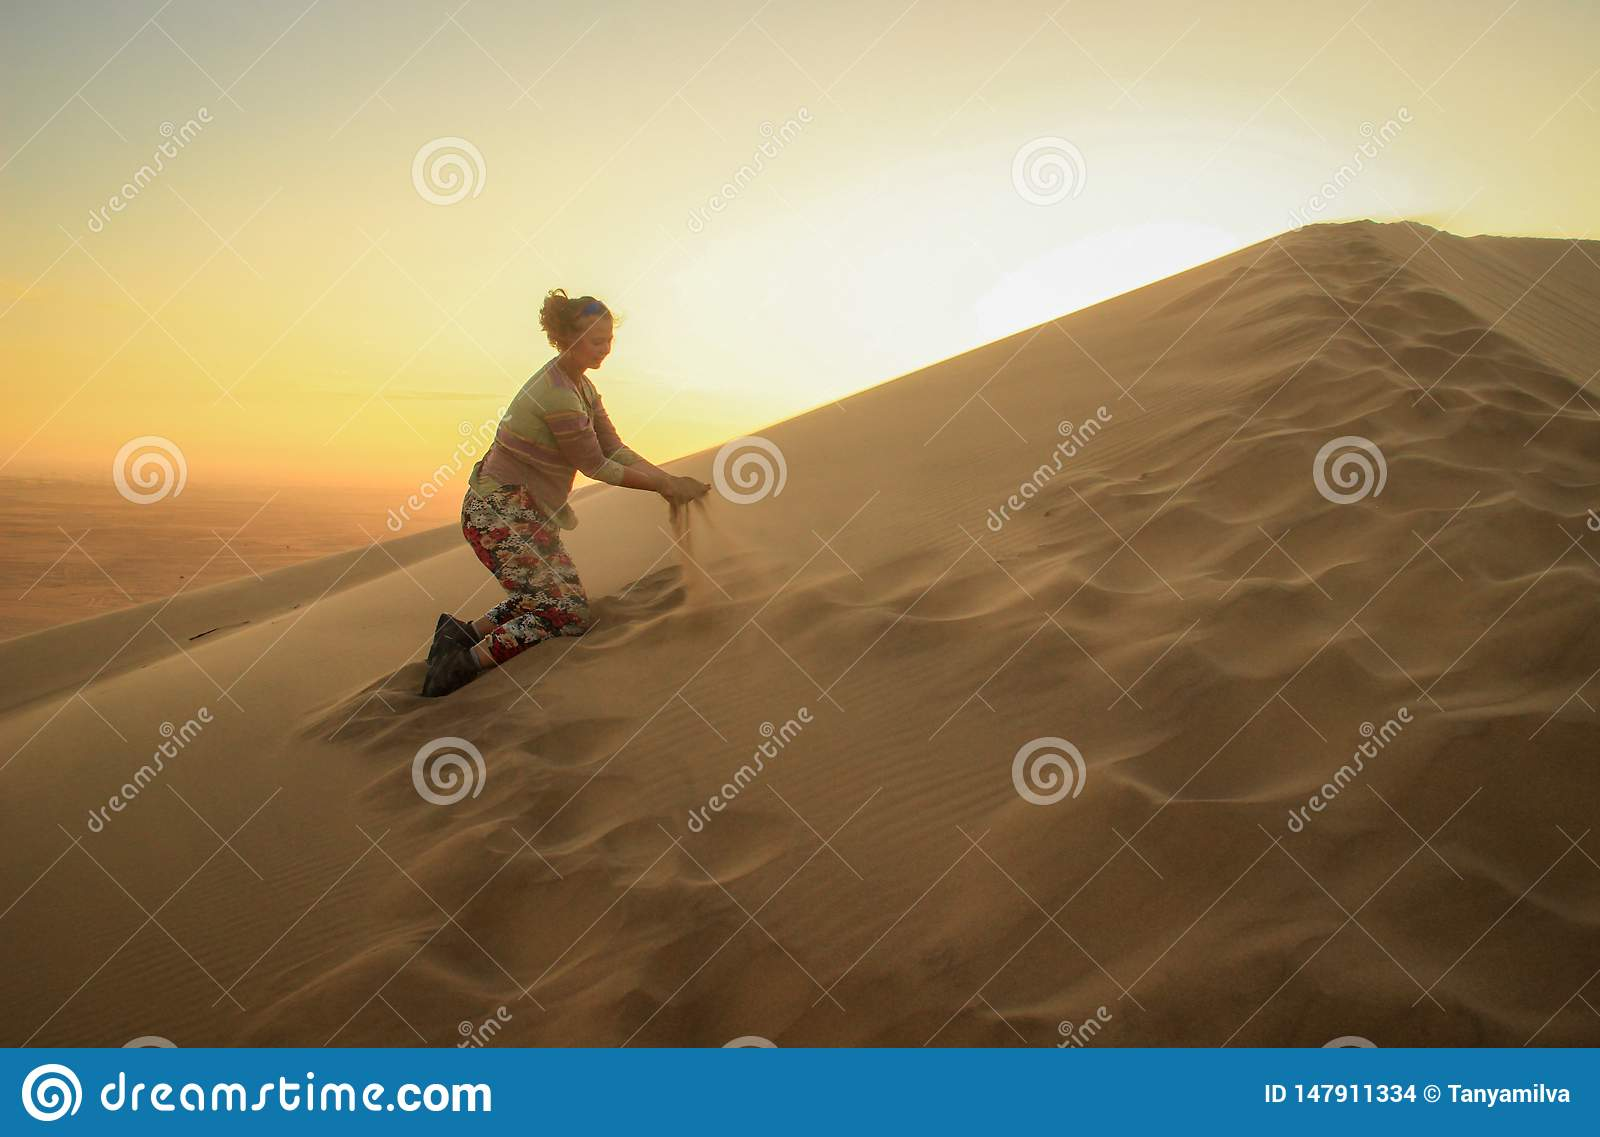 Namib Desert, in the Namib-Nacluft National Park in Namibia. Sossusvlei. Young woman tourist playing with sand